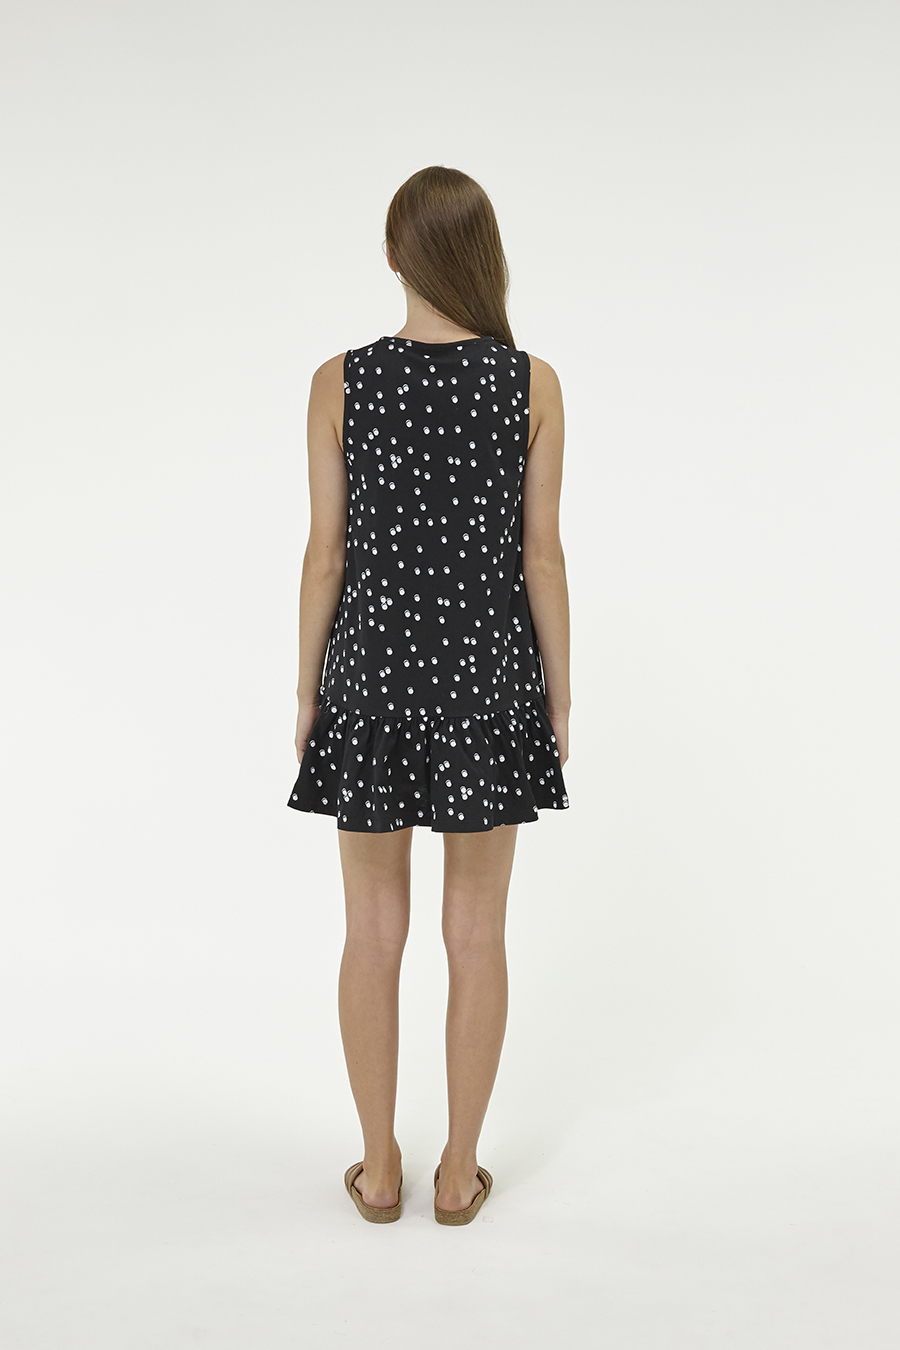 Huffer_Q3-16_W-Port-Volley-Dress_Black-03